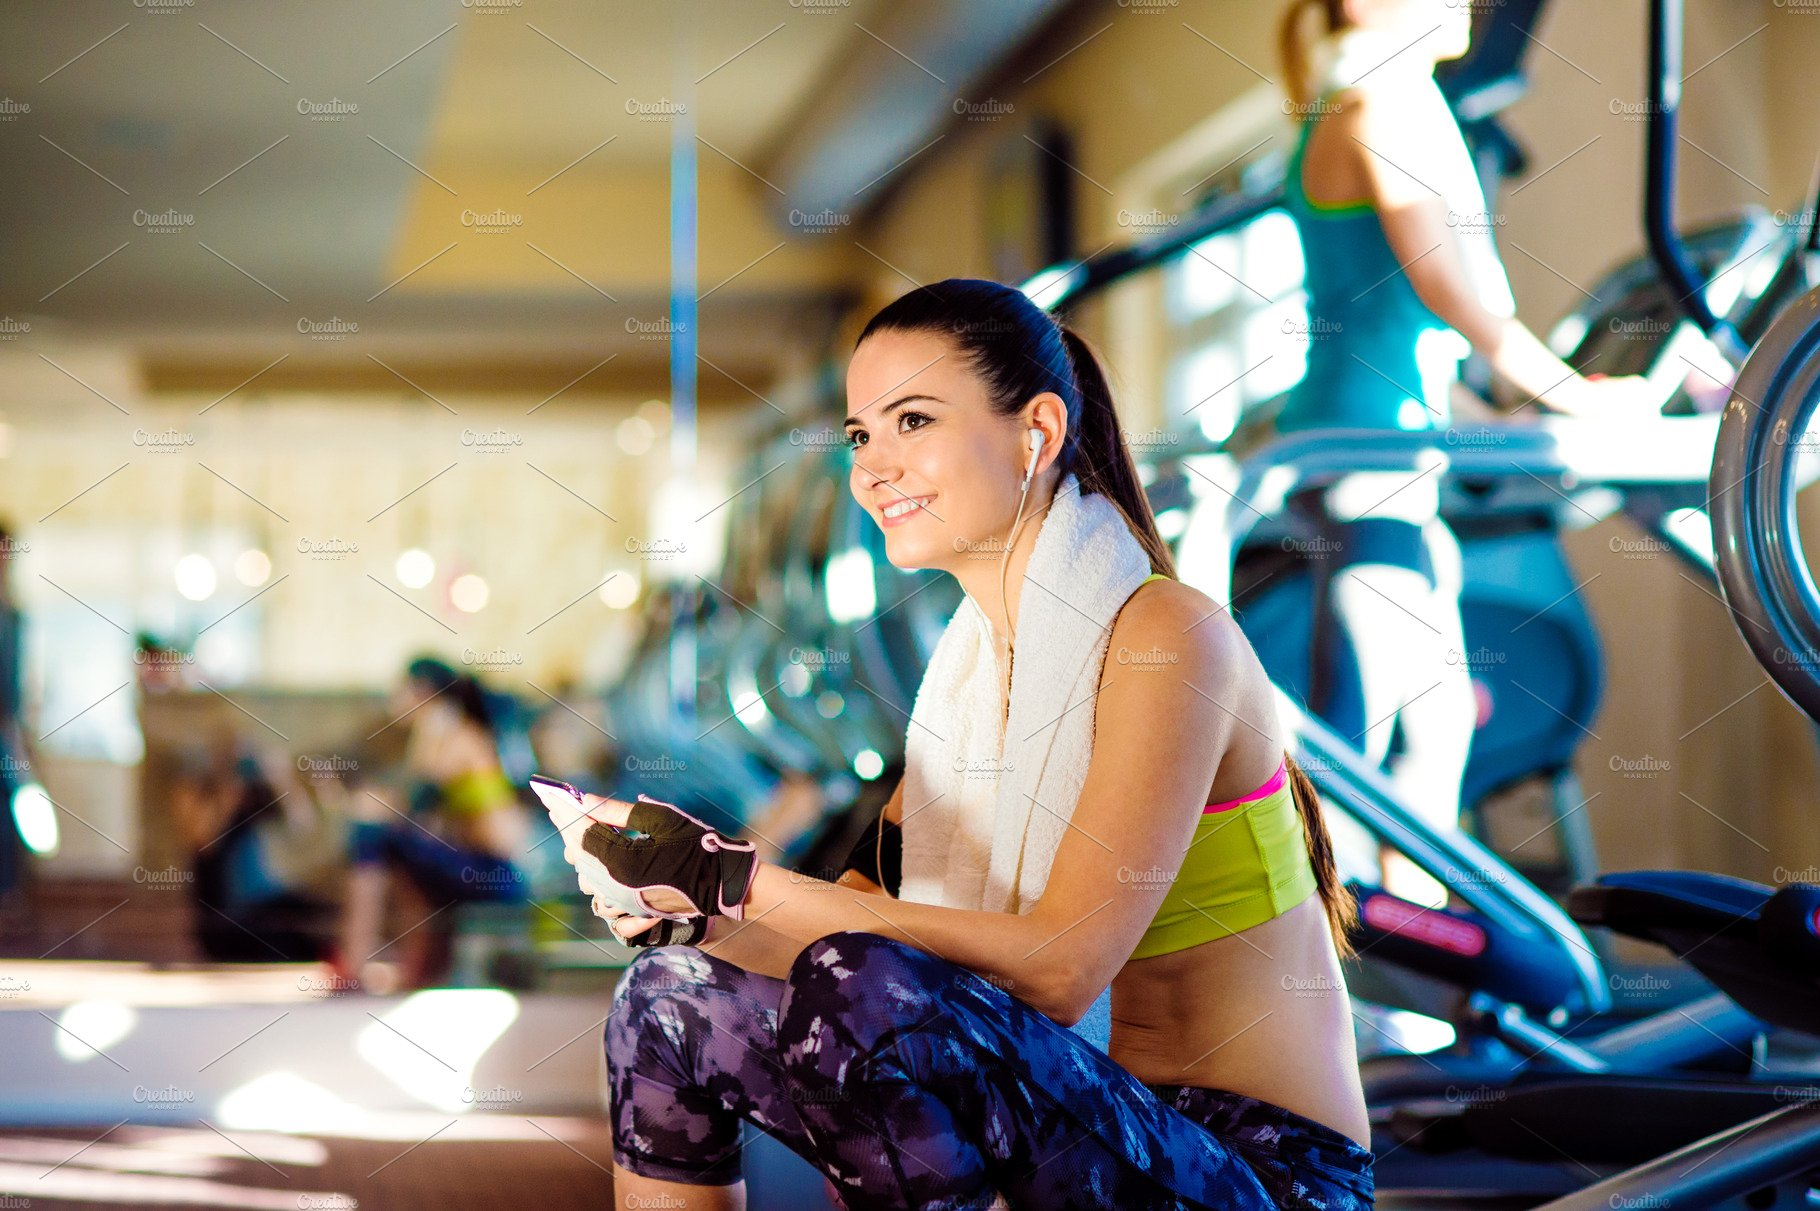 Attractive Fit Women In A Gym With Smart Phone High Quality People Images Creative Market Hatred has no place here. attractive fit women in a gym with smart phone